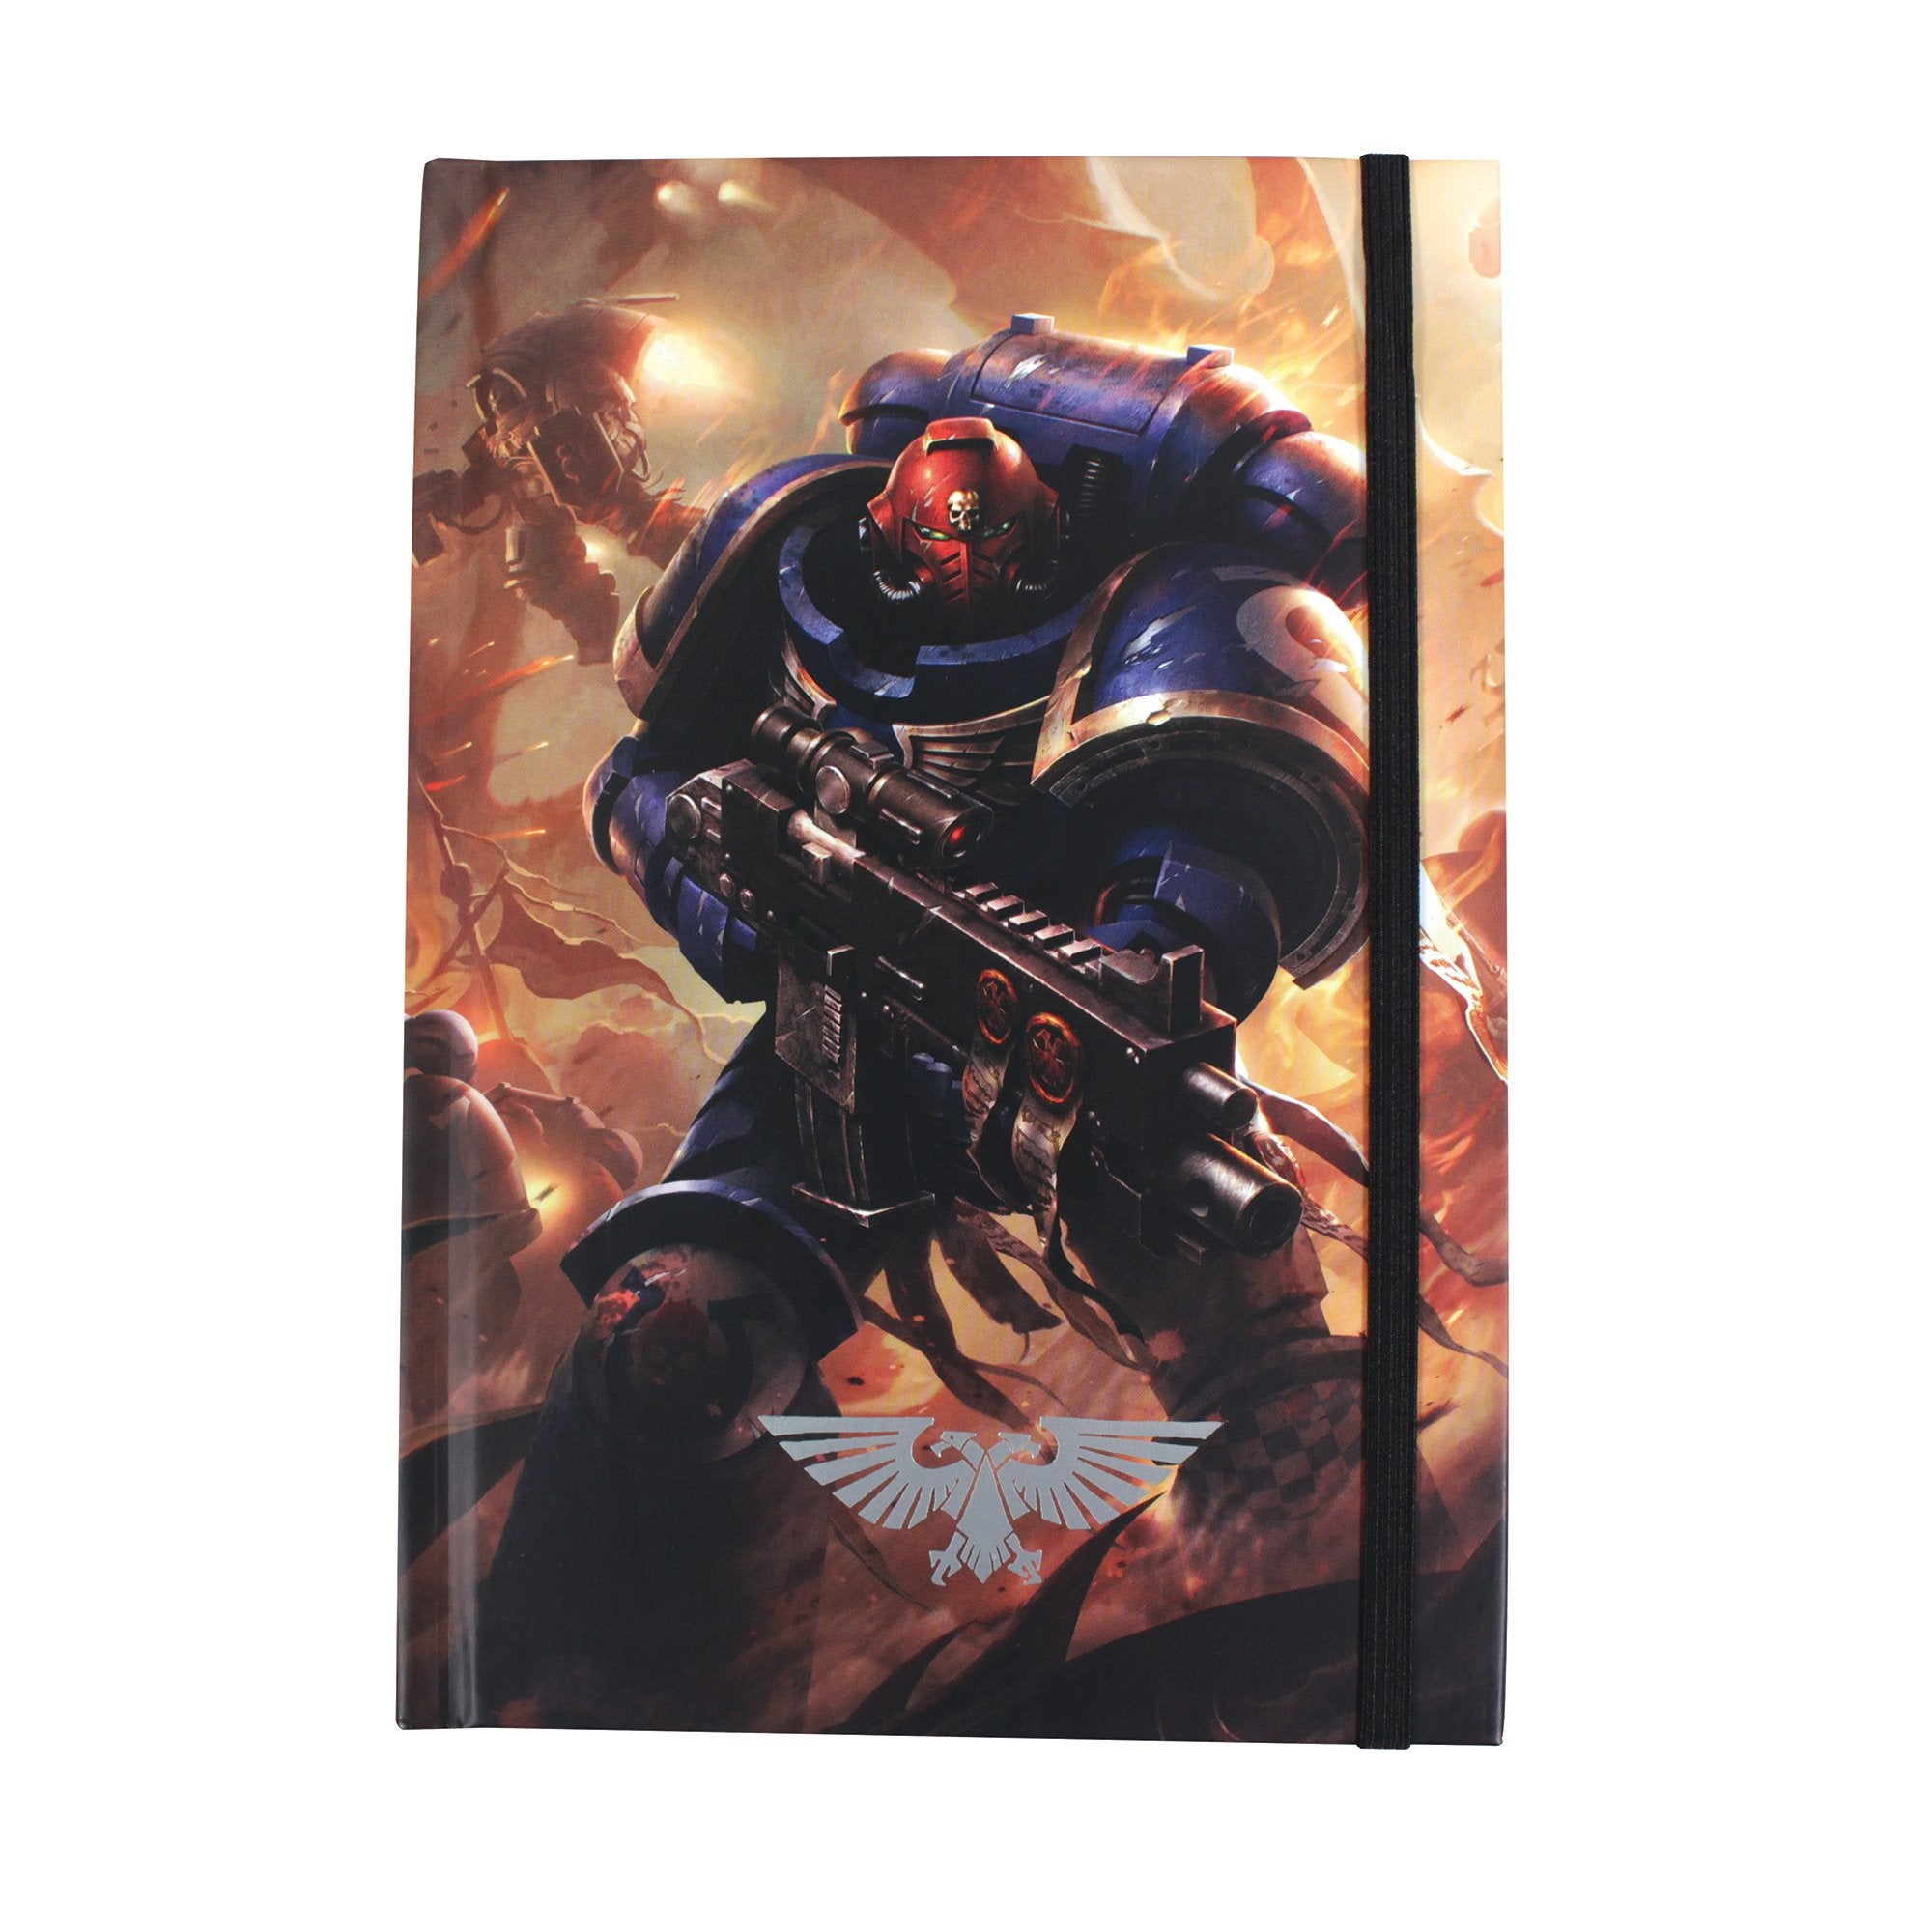 Warhammer 40,000 A5 Notebook - Battle - Half Moon Bay US